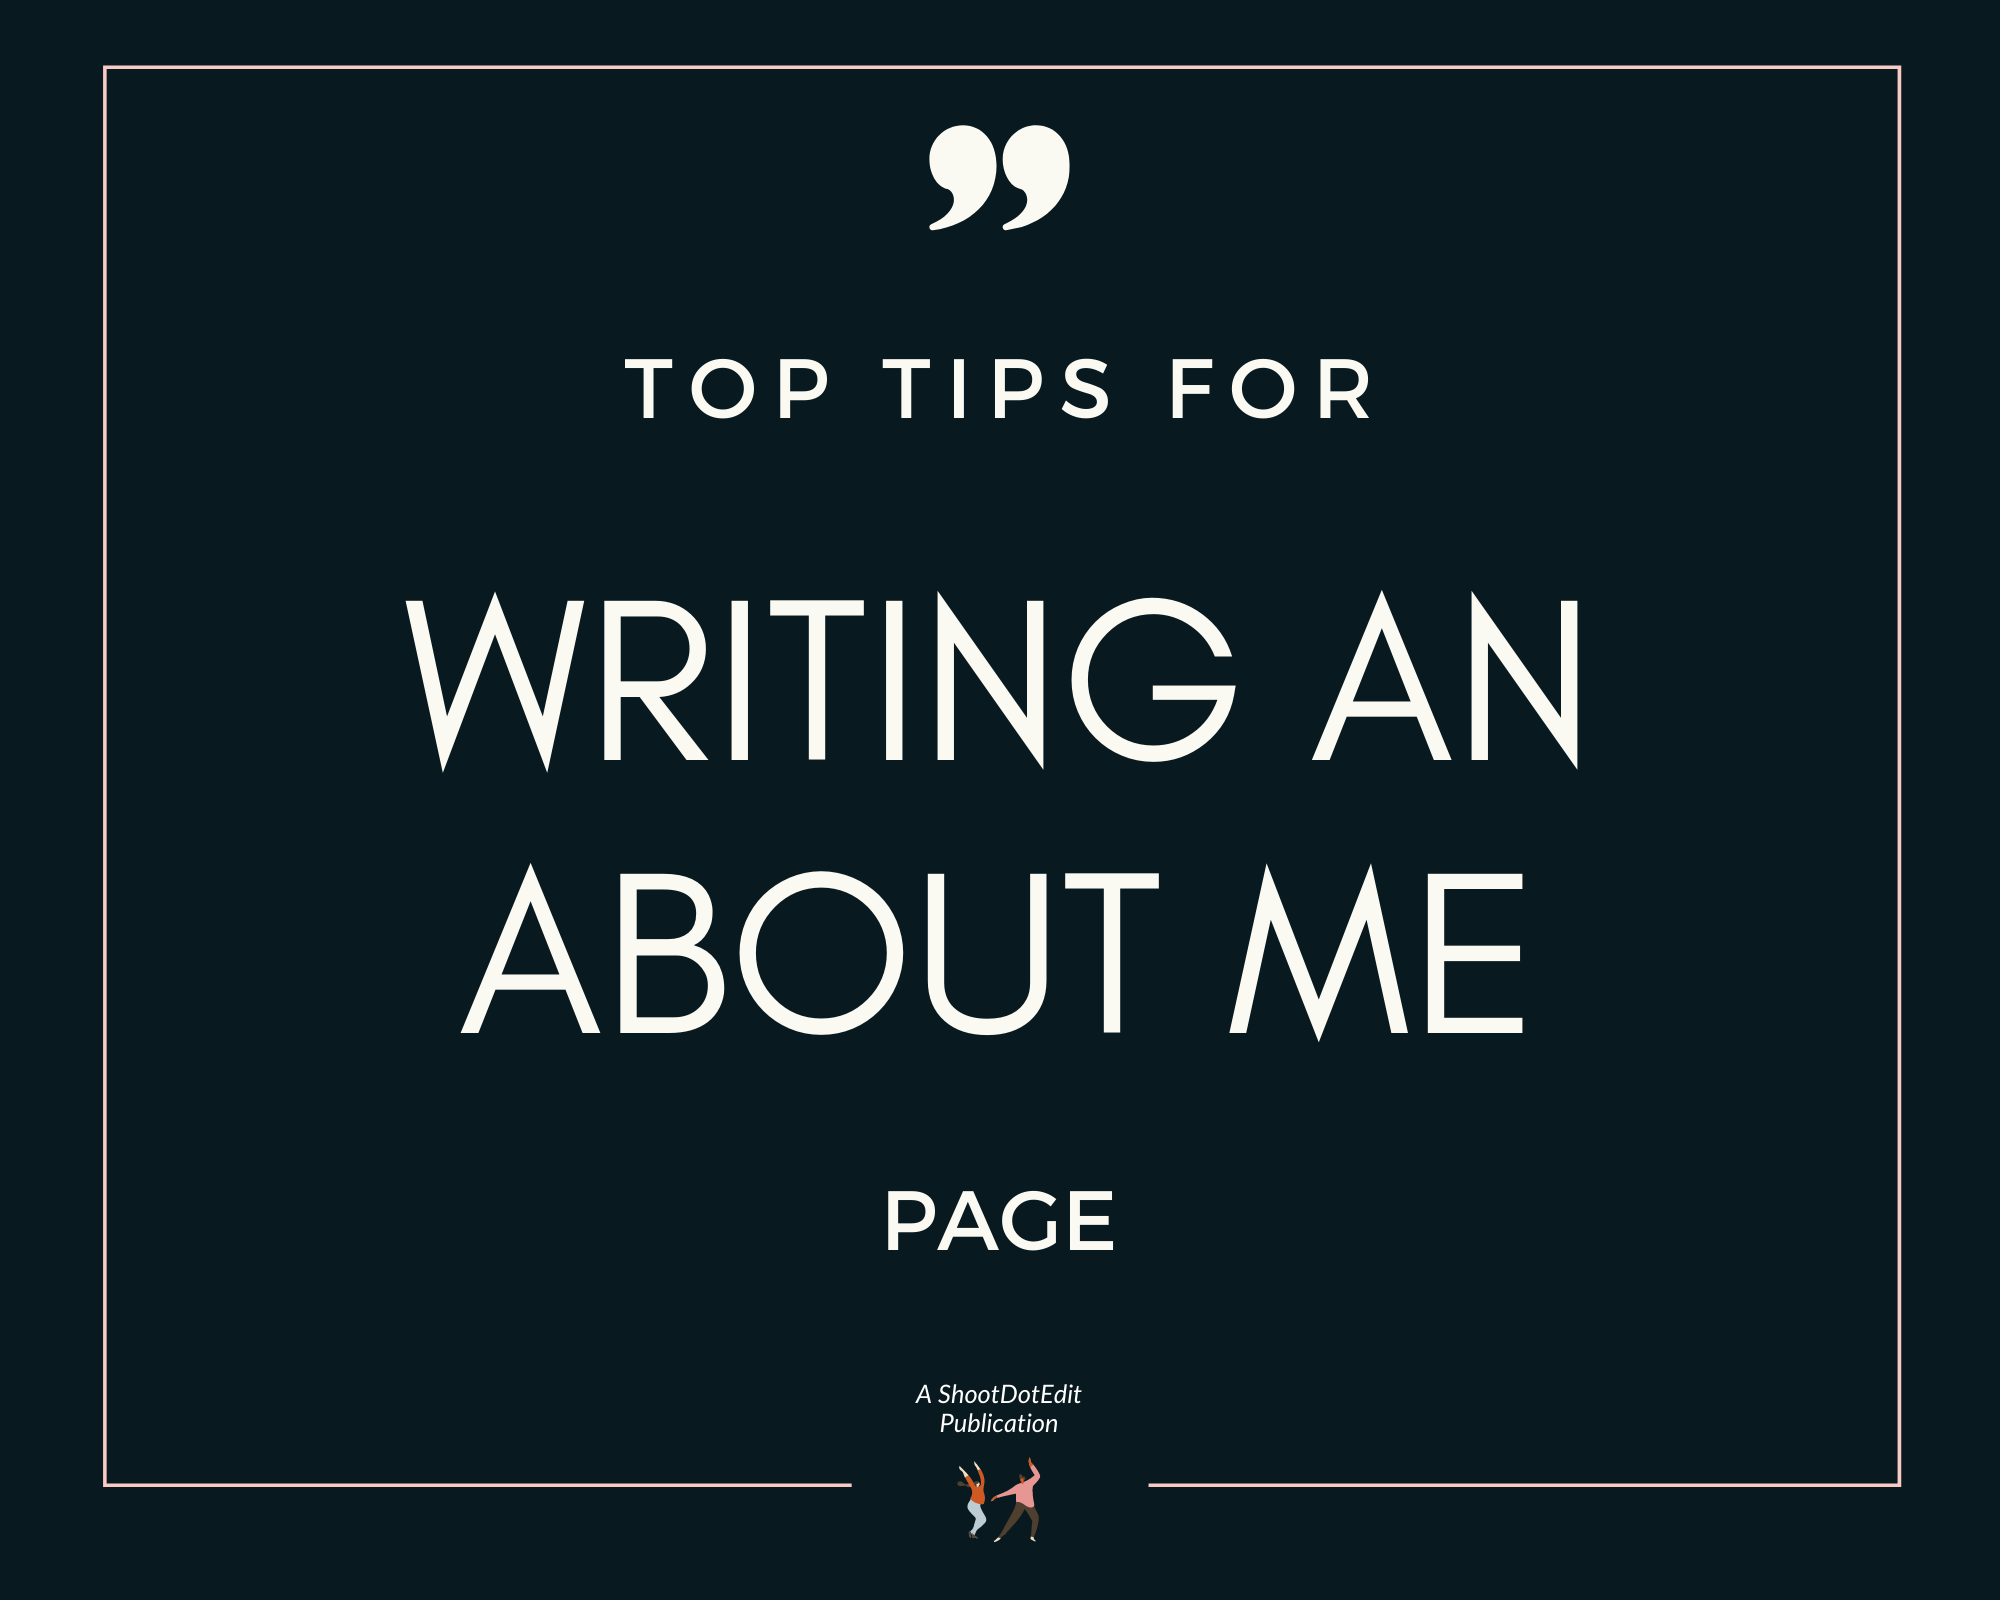 Infographic stating top tips for writing an about me page